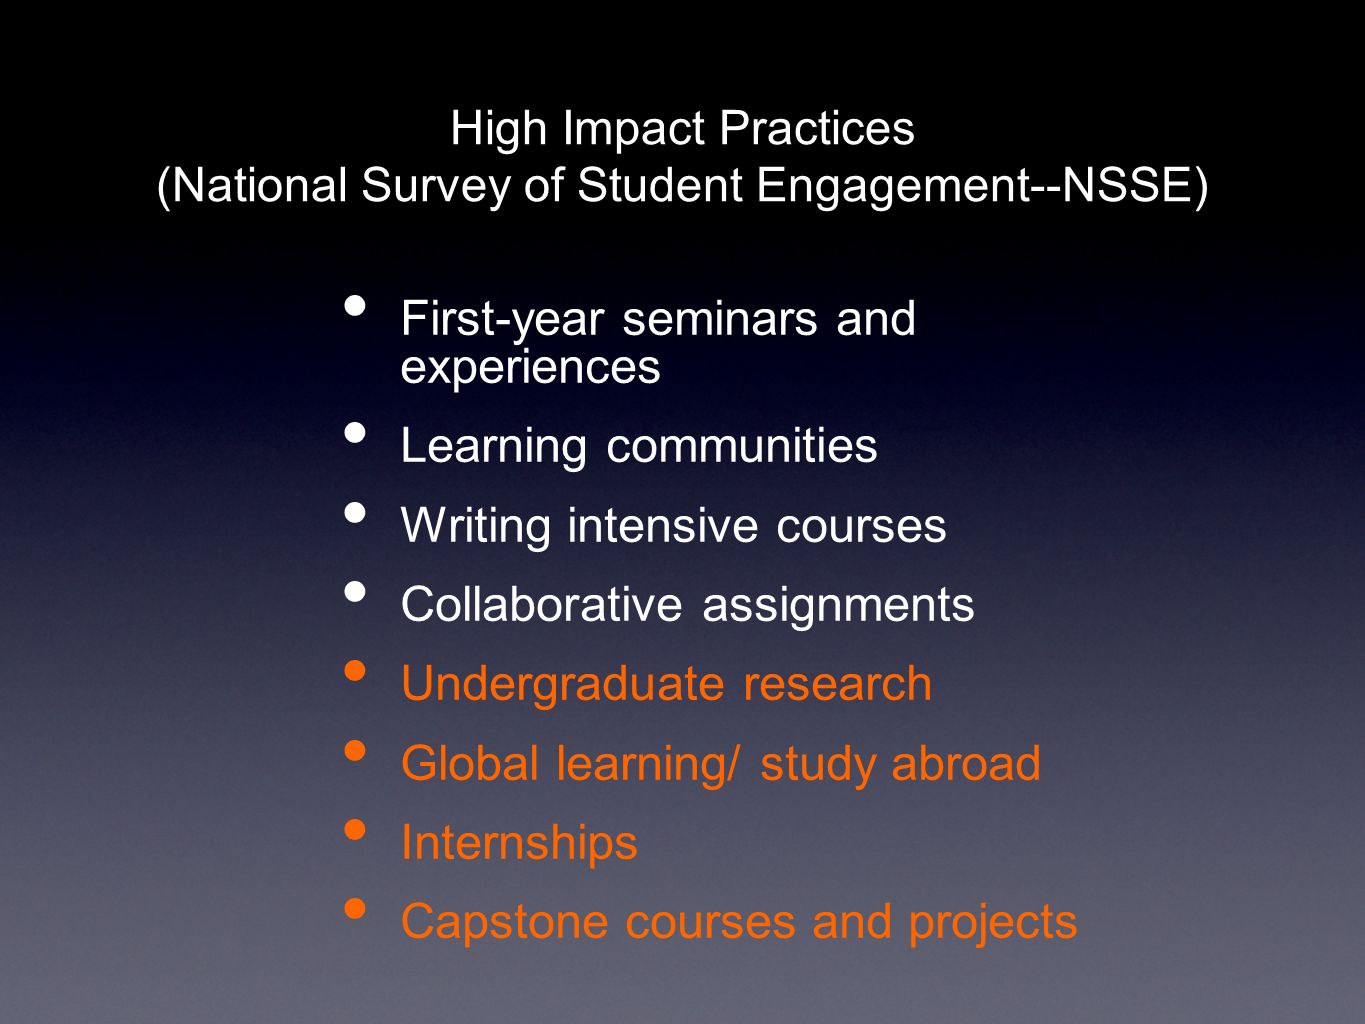 High Impact Practices (National Survey of Student Engagement--NSSE) First-year seminars and experiences Learning communities Writing intensive courses Collaborative assignments Undergraduate research Global learning/ study abroad Internships Capstone courses and projects